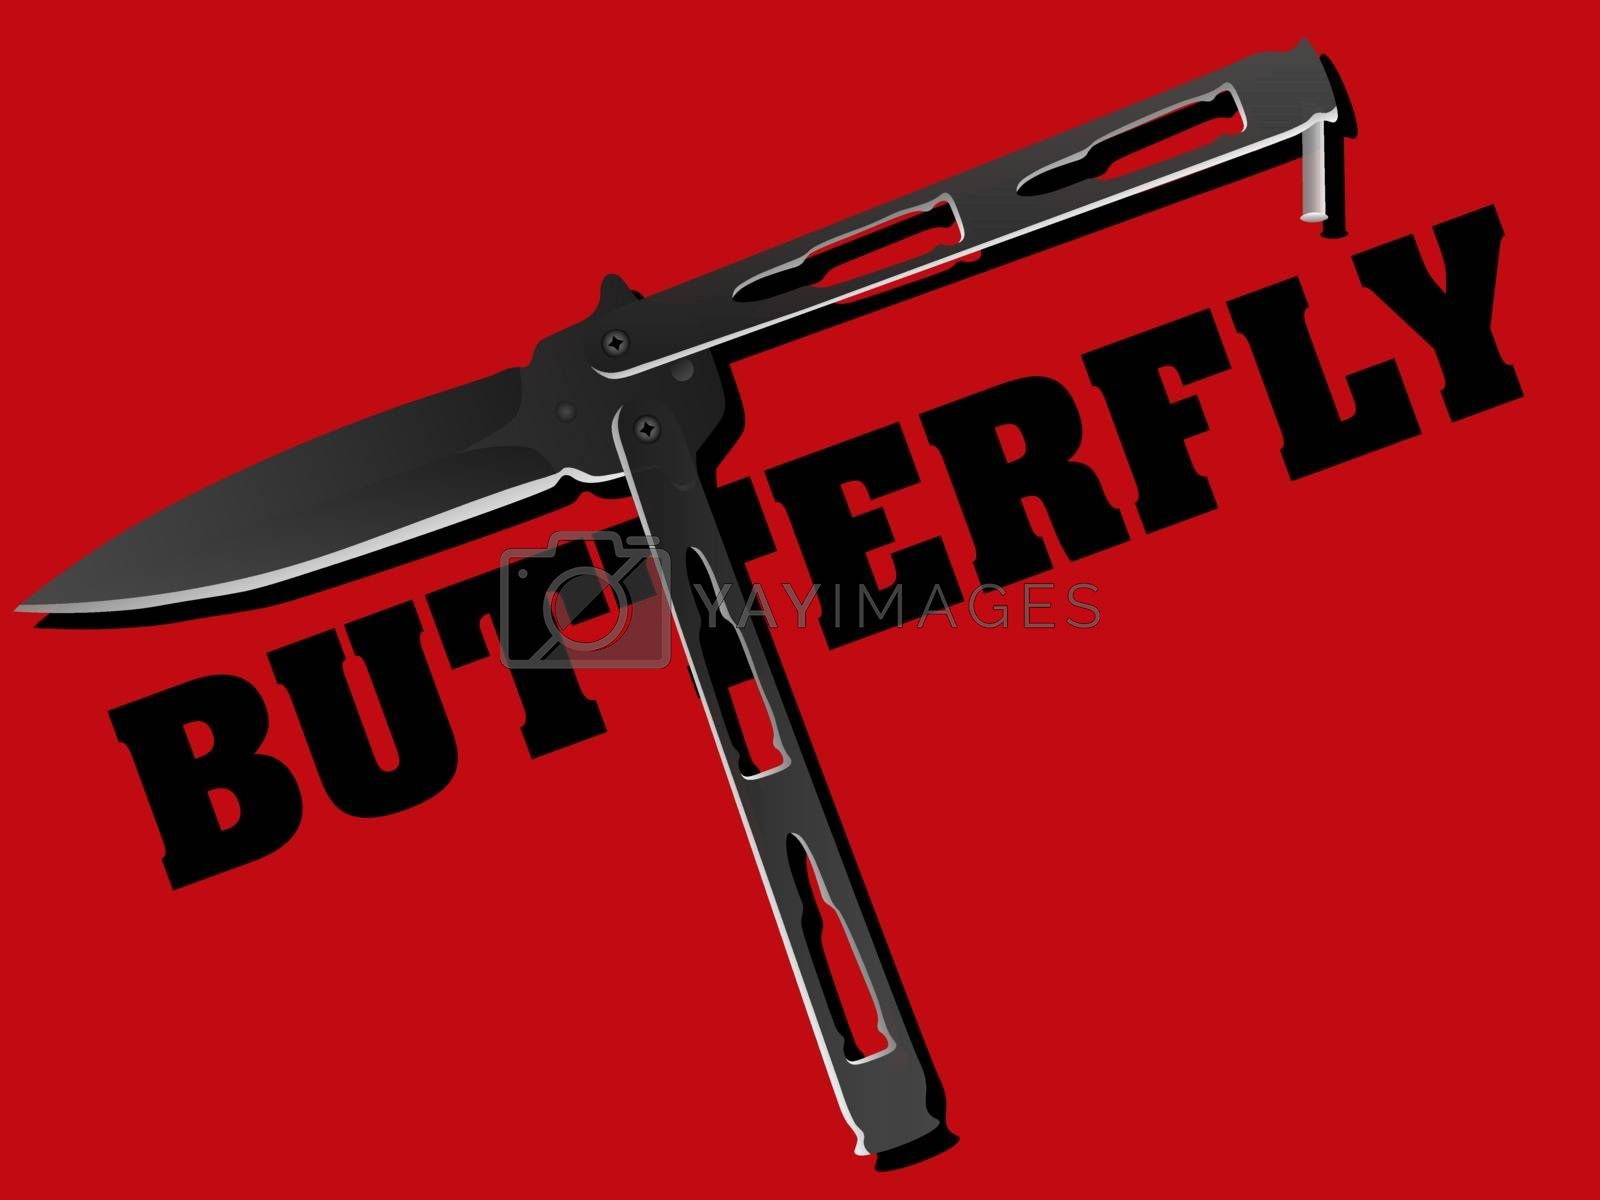 Realistic black balisong or butterly knife in the word 'butterfly' on red background